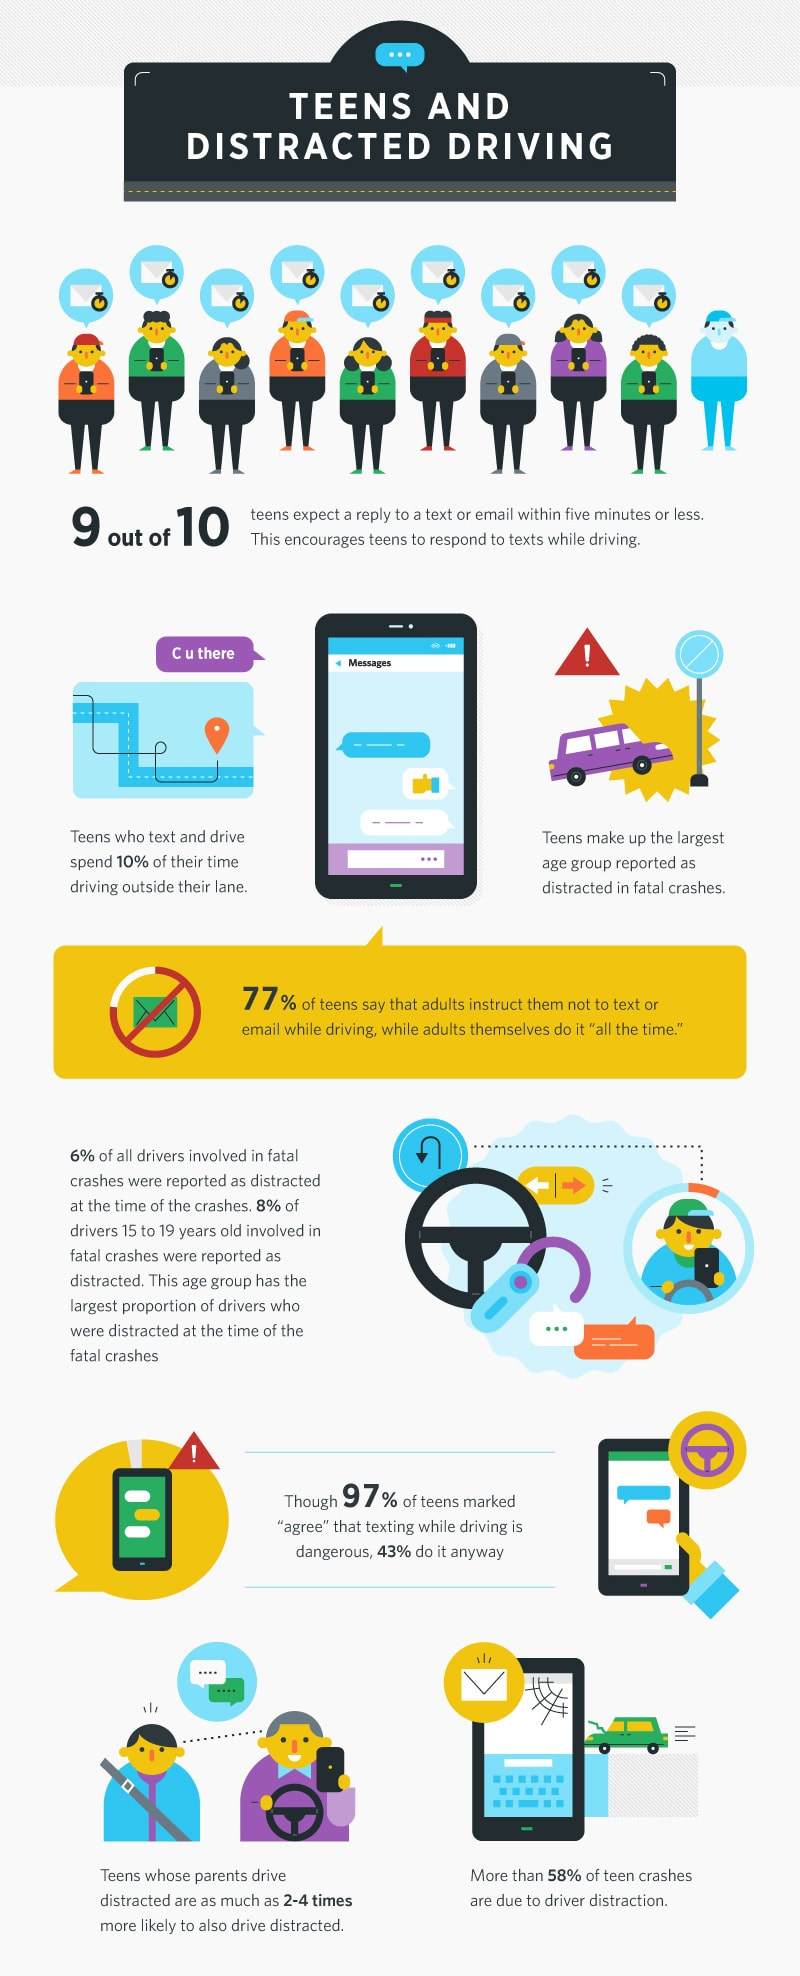 Teen Distracted Driving Statistics